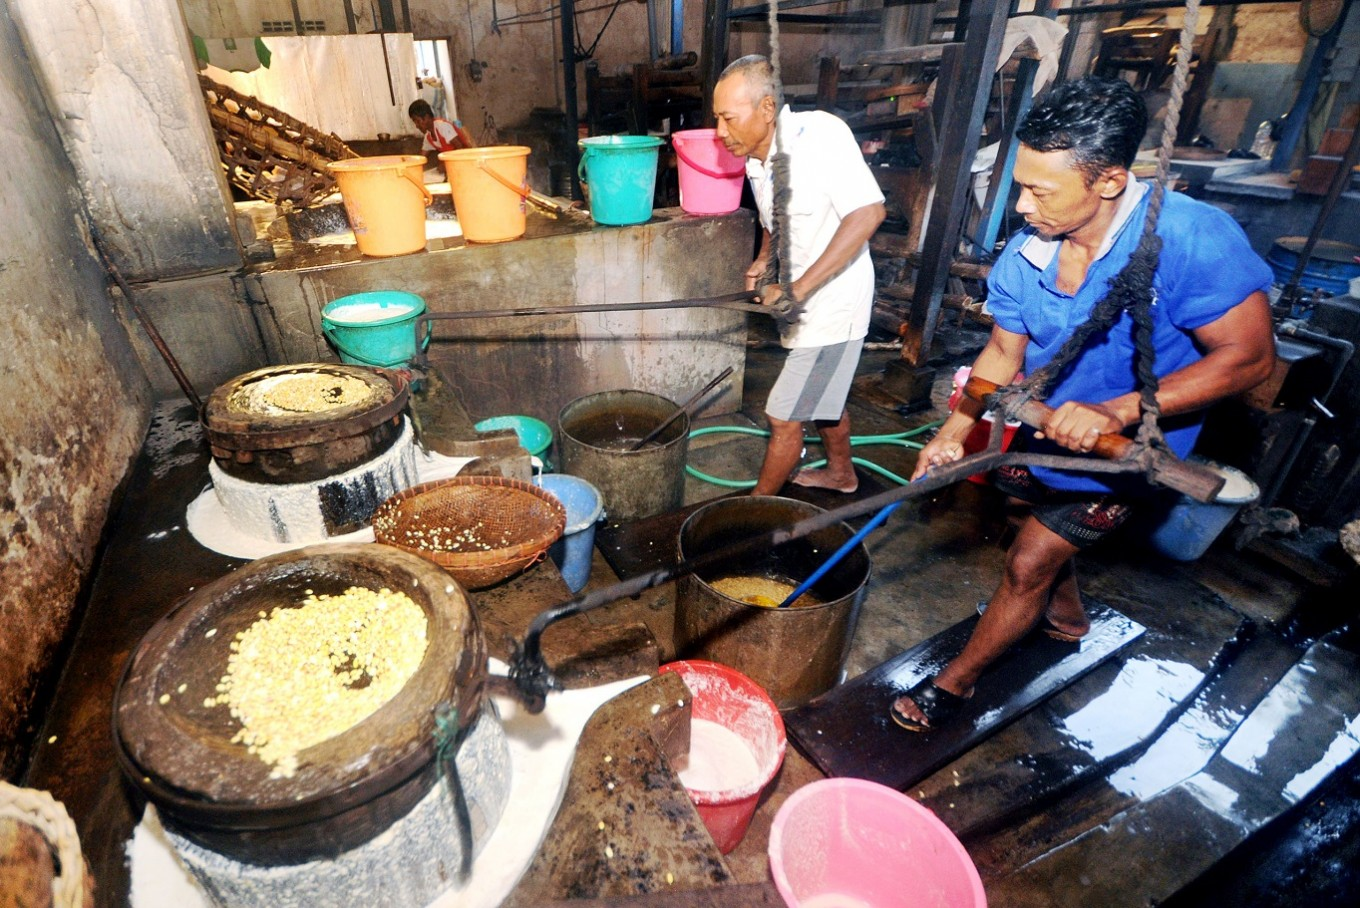 The high cost of manual production at Herman's factory made his tofu more expensive than other tofu in Kediri.